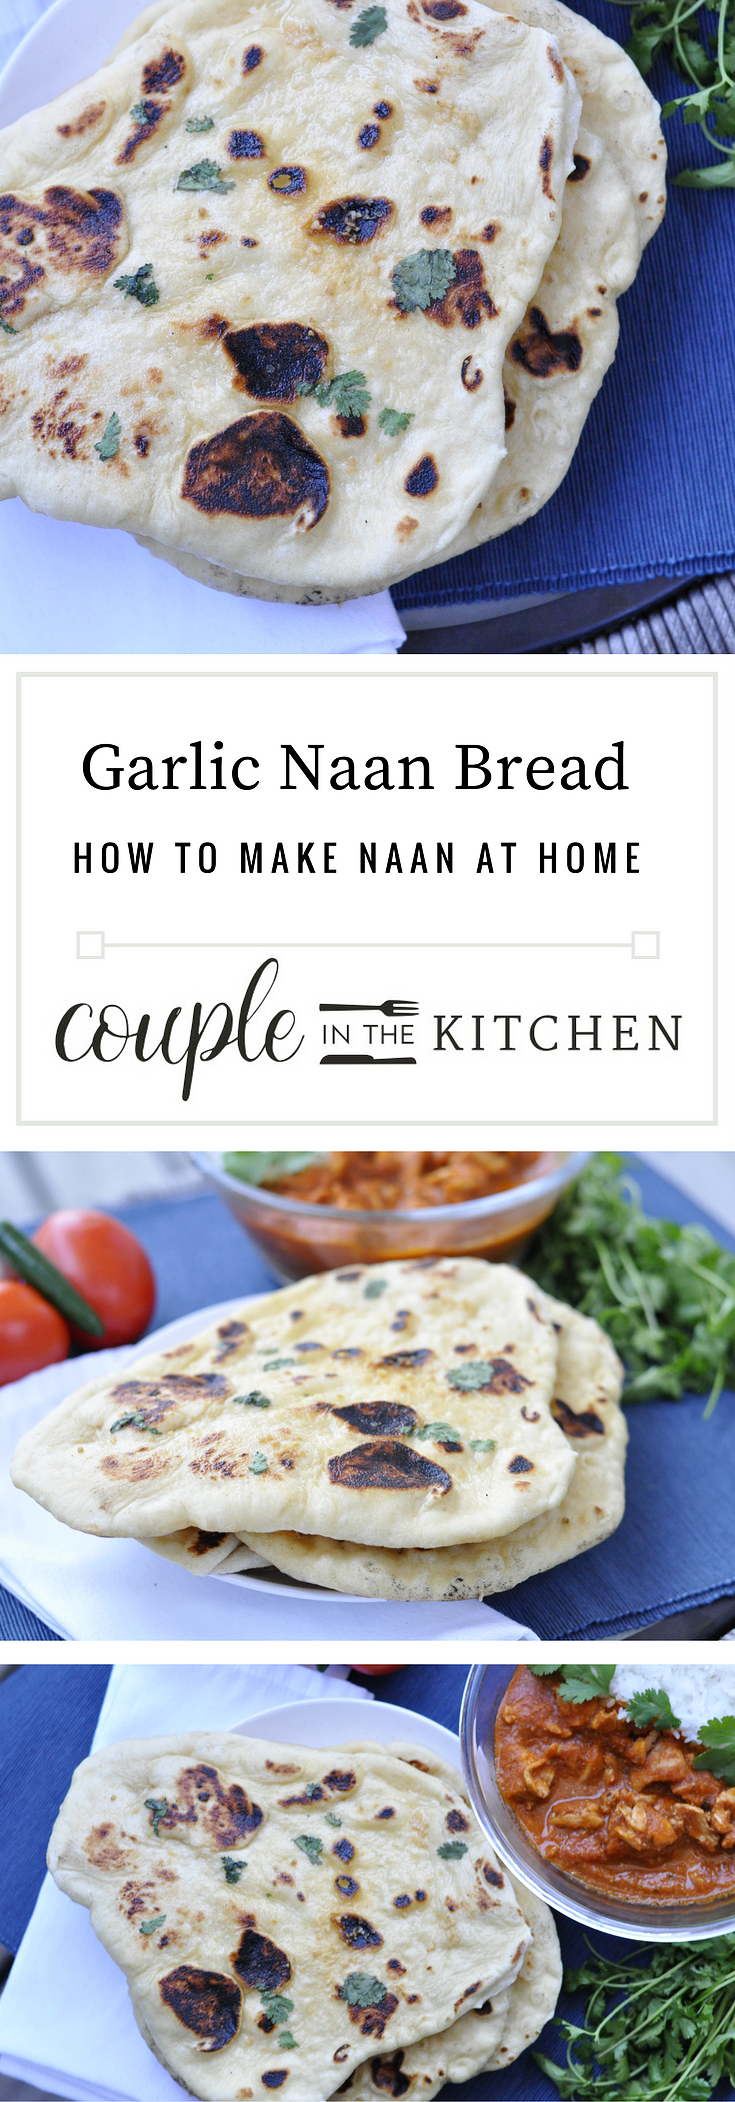 How to make naan bread couple in the kitchen naan bread recipe indian food coupleinthekitchen forumfinder Images